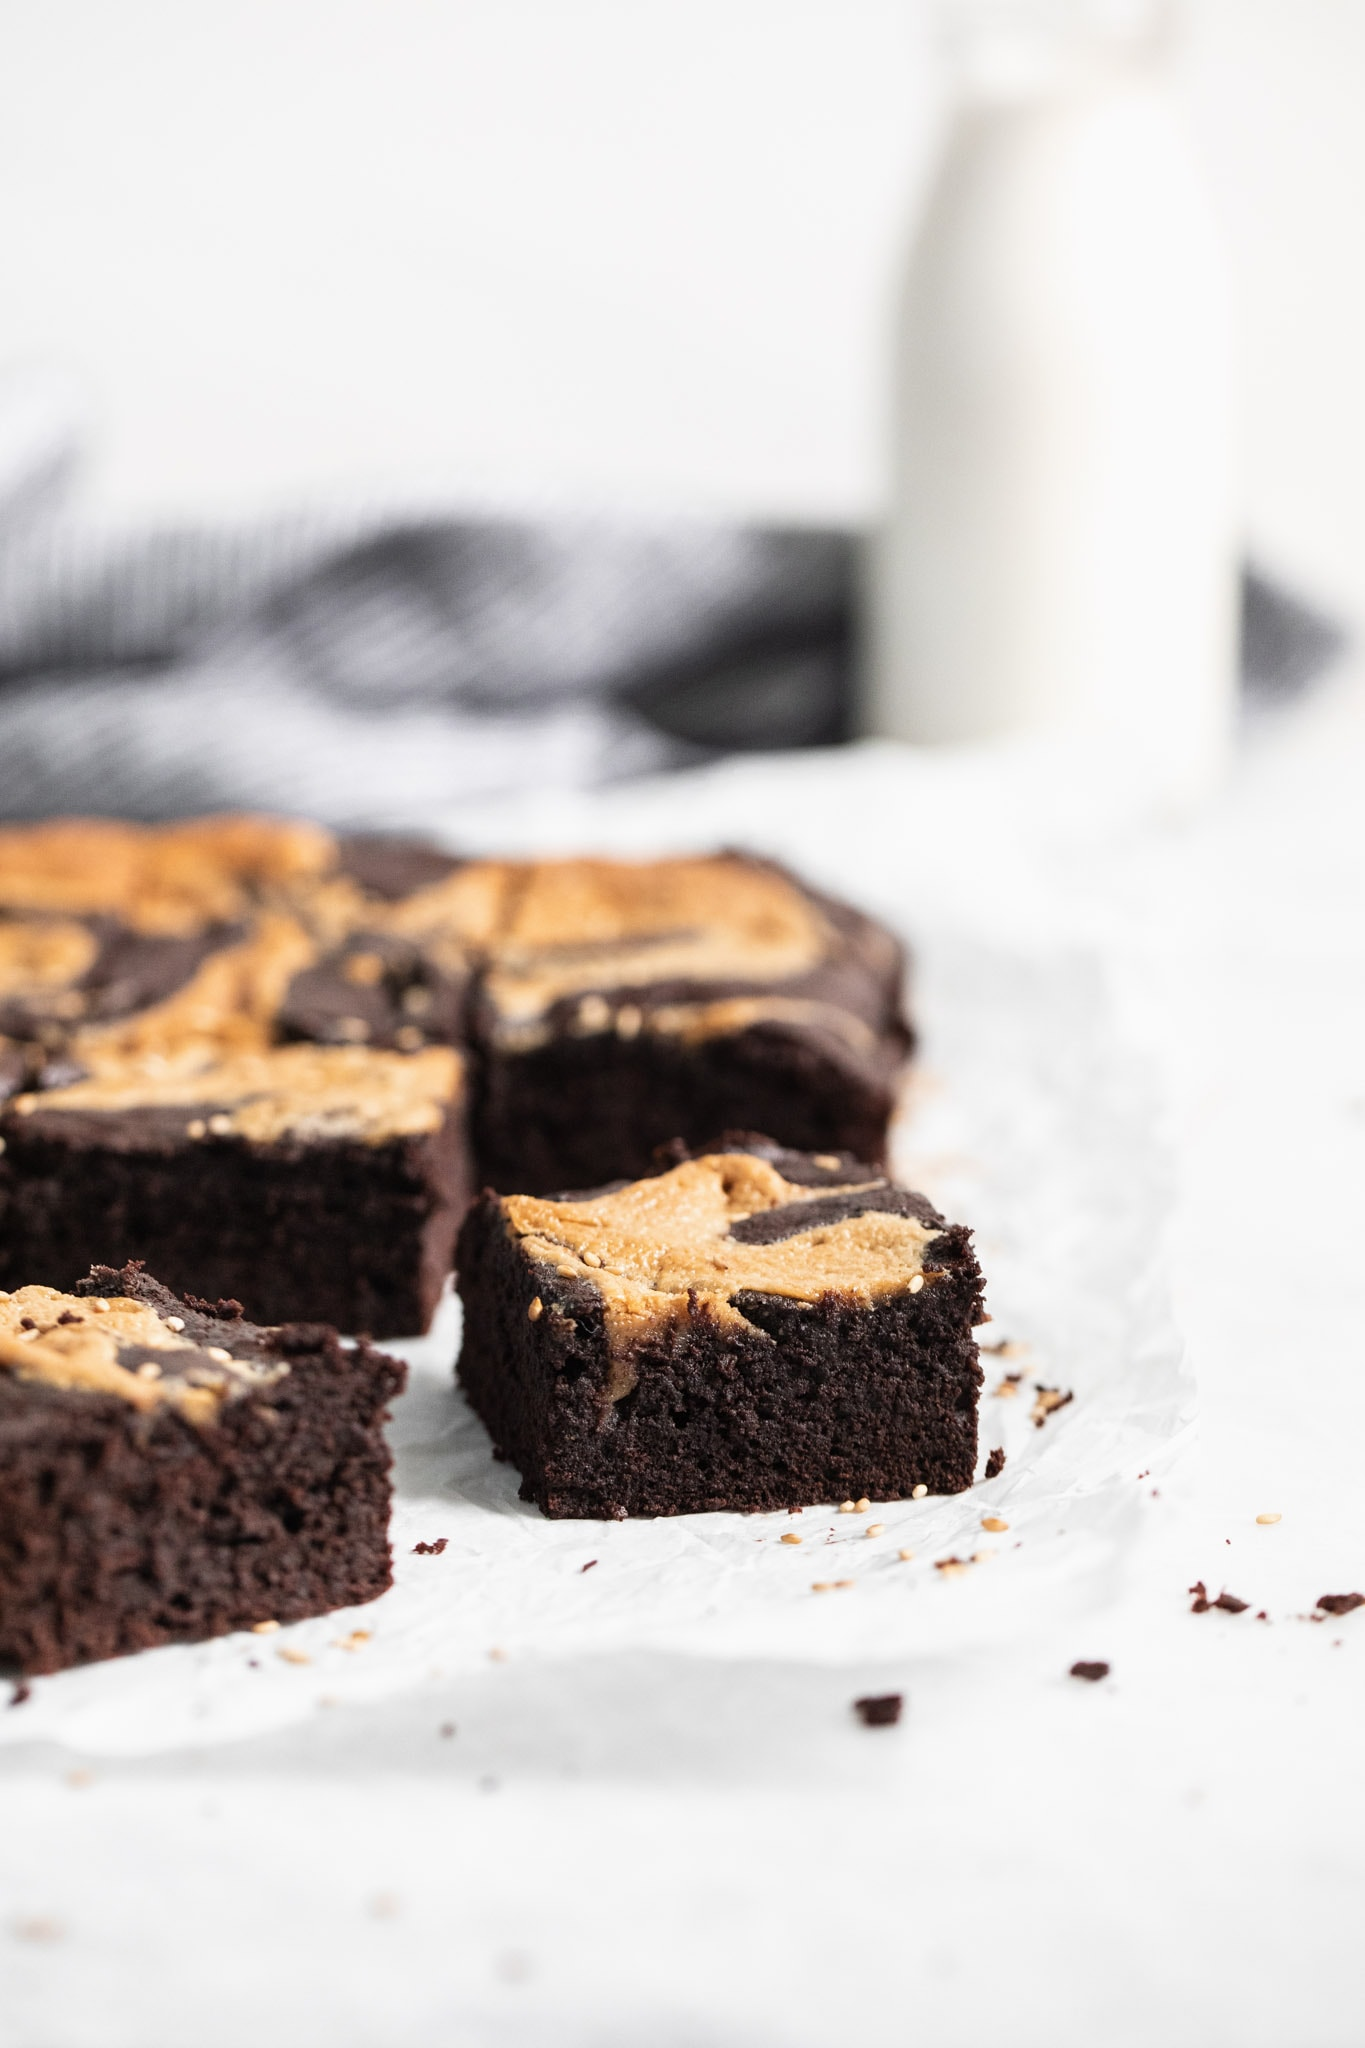 Introducing Halva Brownies AKA thick fudgy brownies swirled with ribbons of halva, my favorite middle eastern confection. Think tahini brownies, but better!